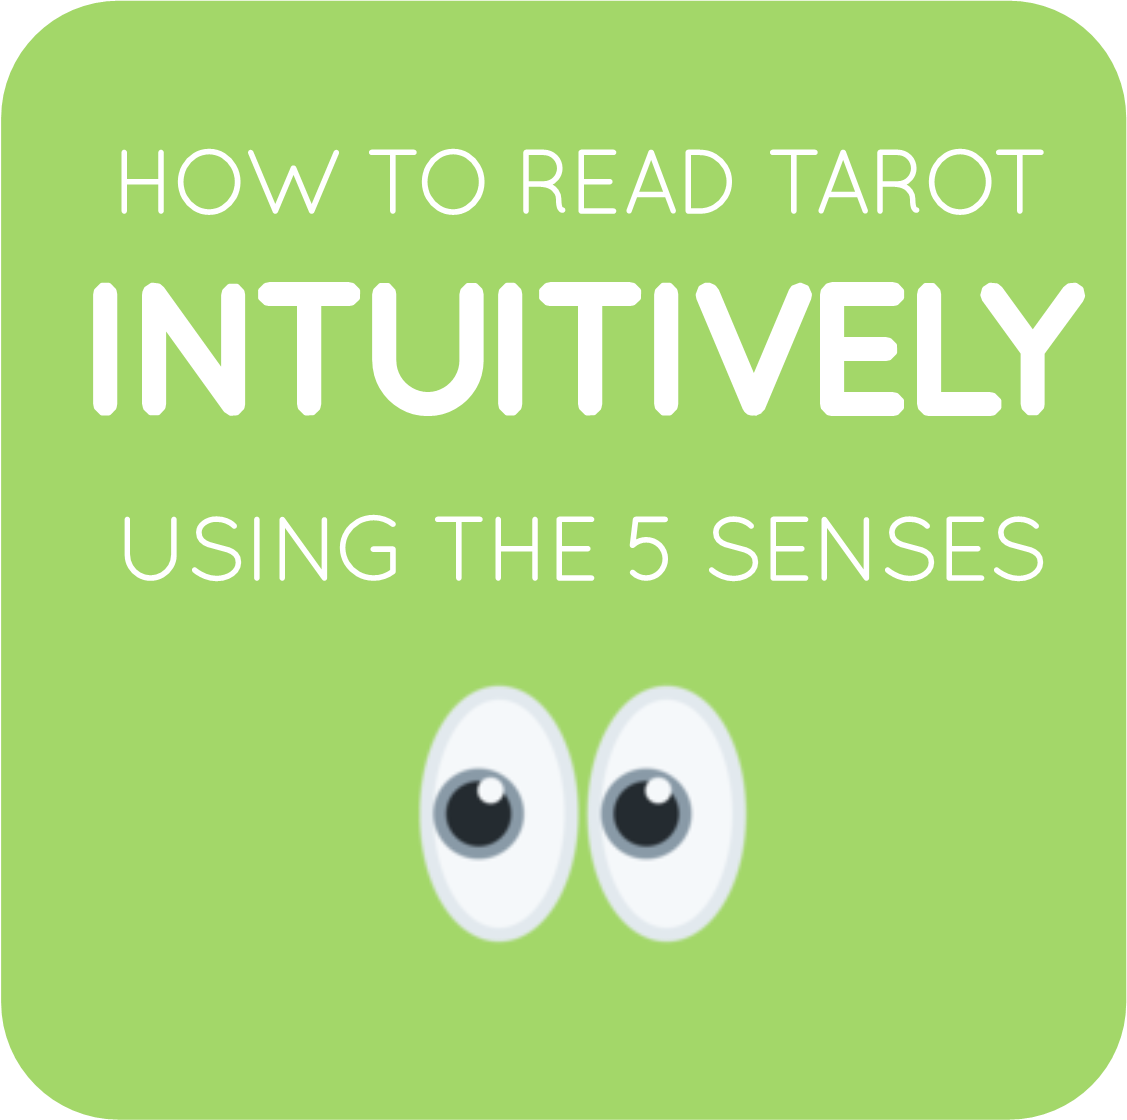 04-how to read tarot intuitively with 5 senses.png